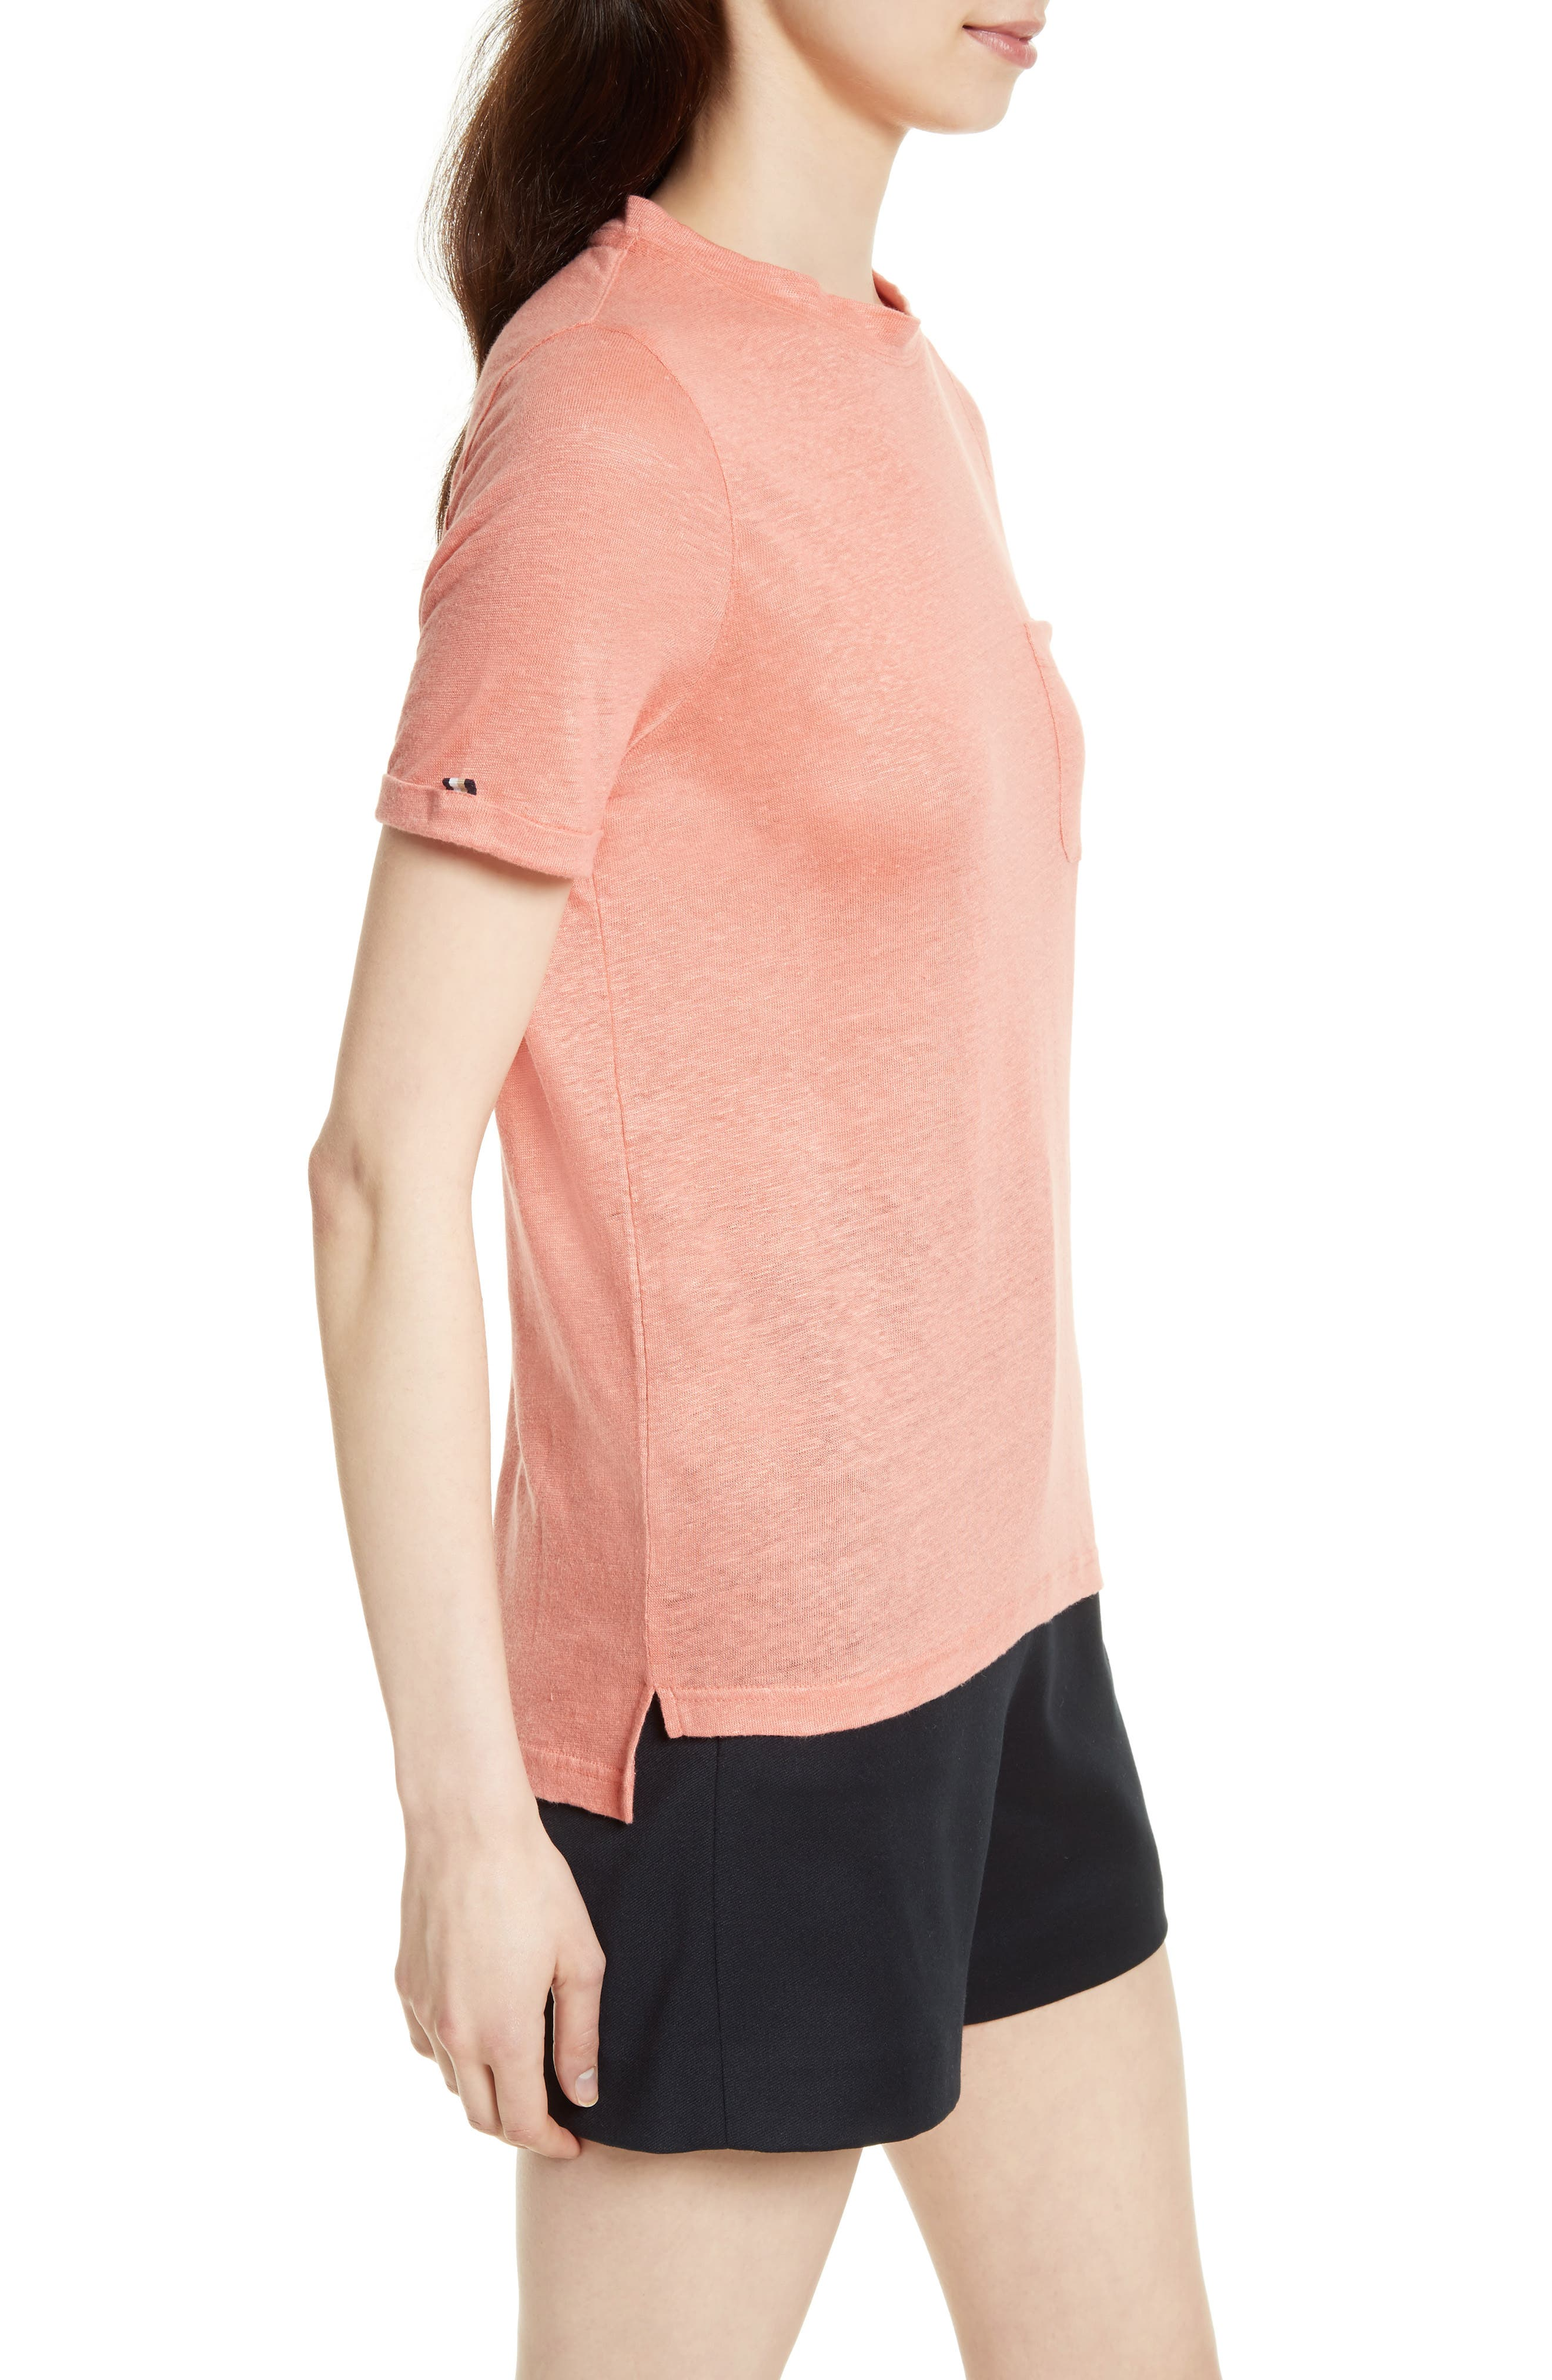 Harlaa Square Cut Linen Tee,                             Alternate thumbnail 3, color,                             Coral